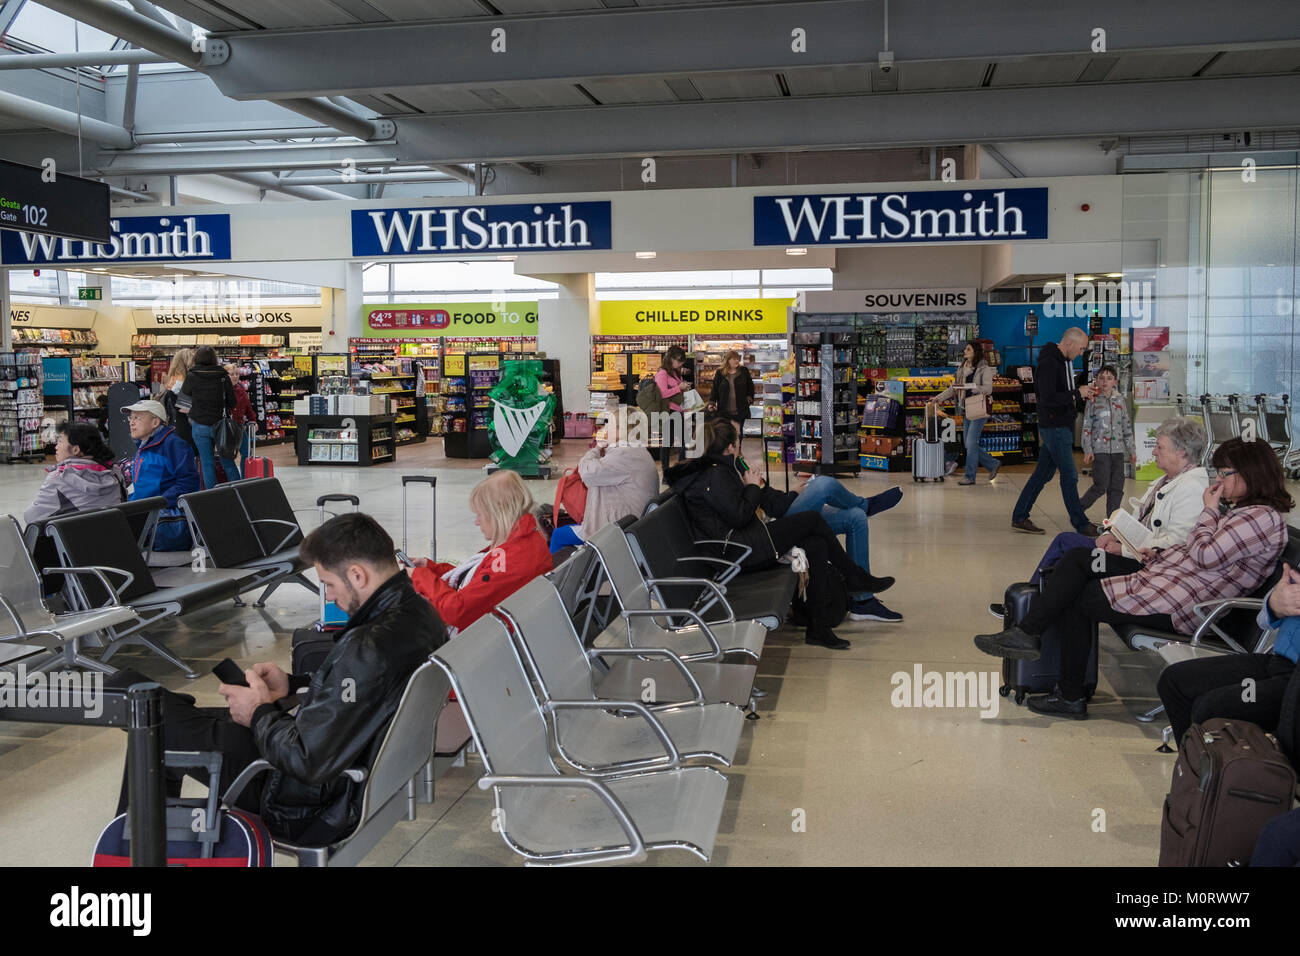 W H Smith shop in departures lounge next to departure gate with passenger seating area, Dublin airport, Ireland - Stock Image